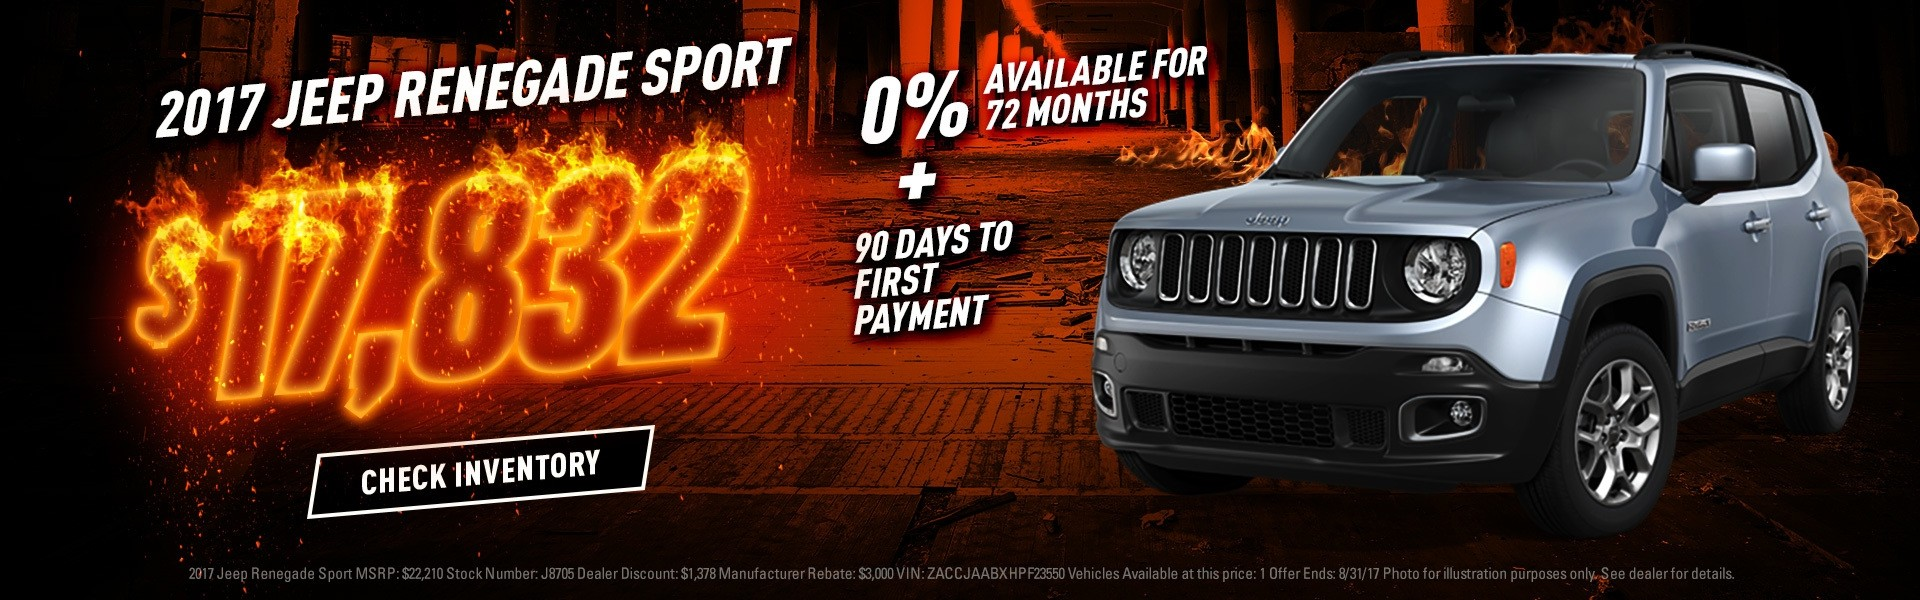 mac haik dodge chrysler jeep ram auto dealer in houston tx. Cars Review. Best American Auto & Cars Review